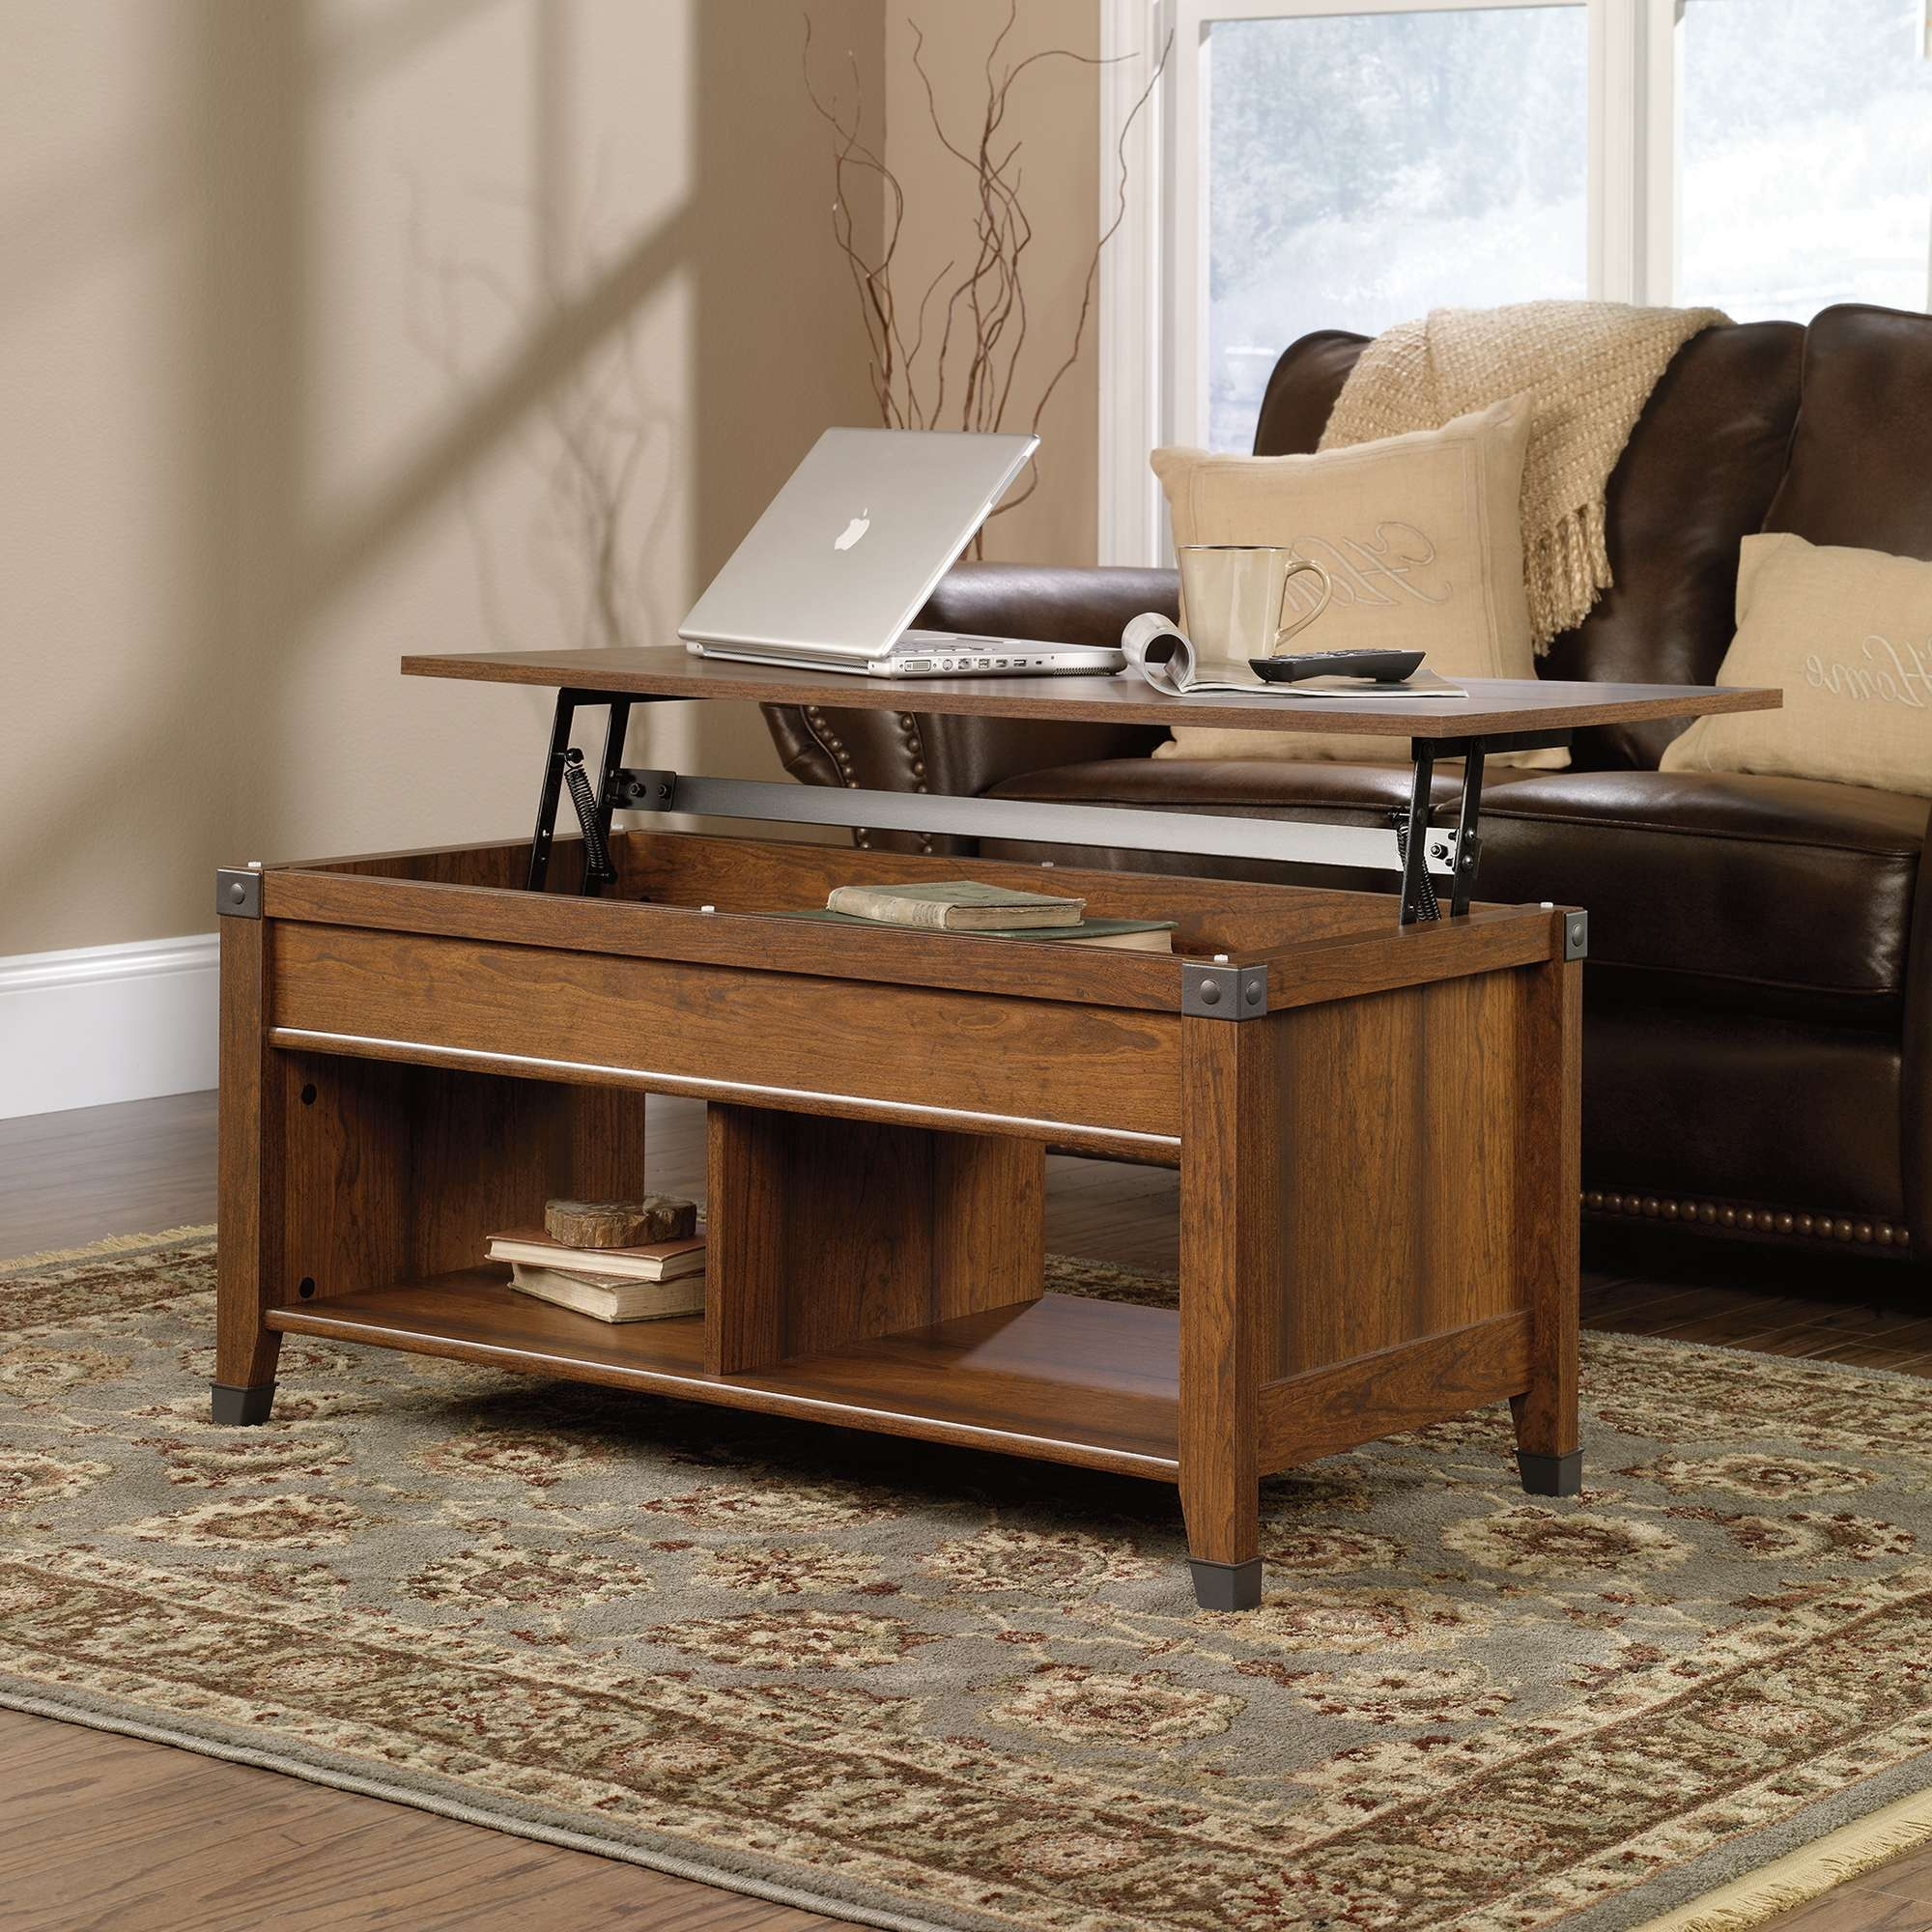 Sauder Within Popular Pull Up Coffee Tables (View 16 of 20)